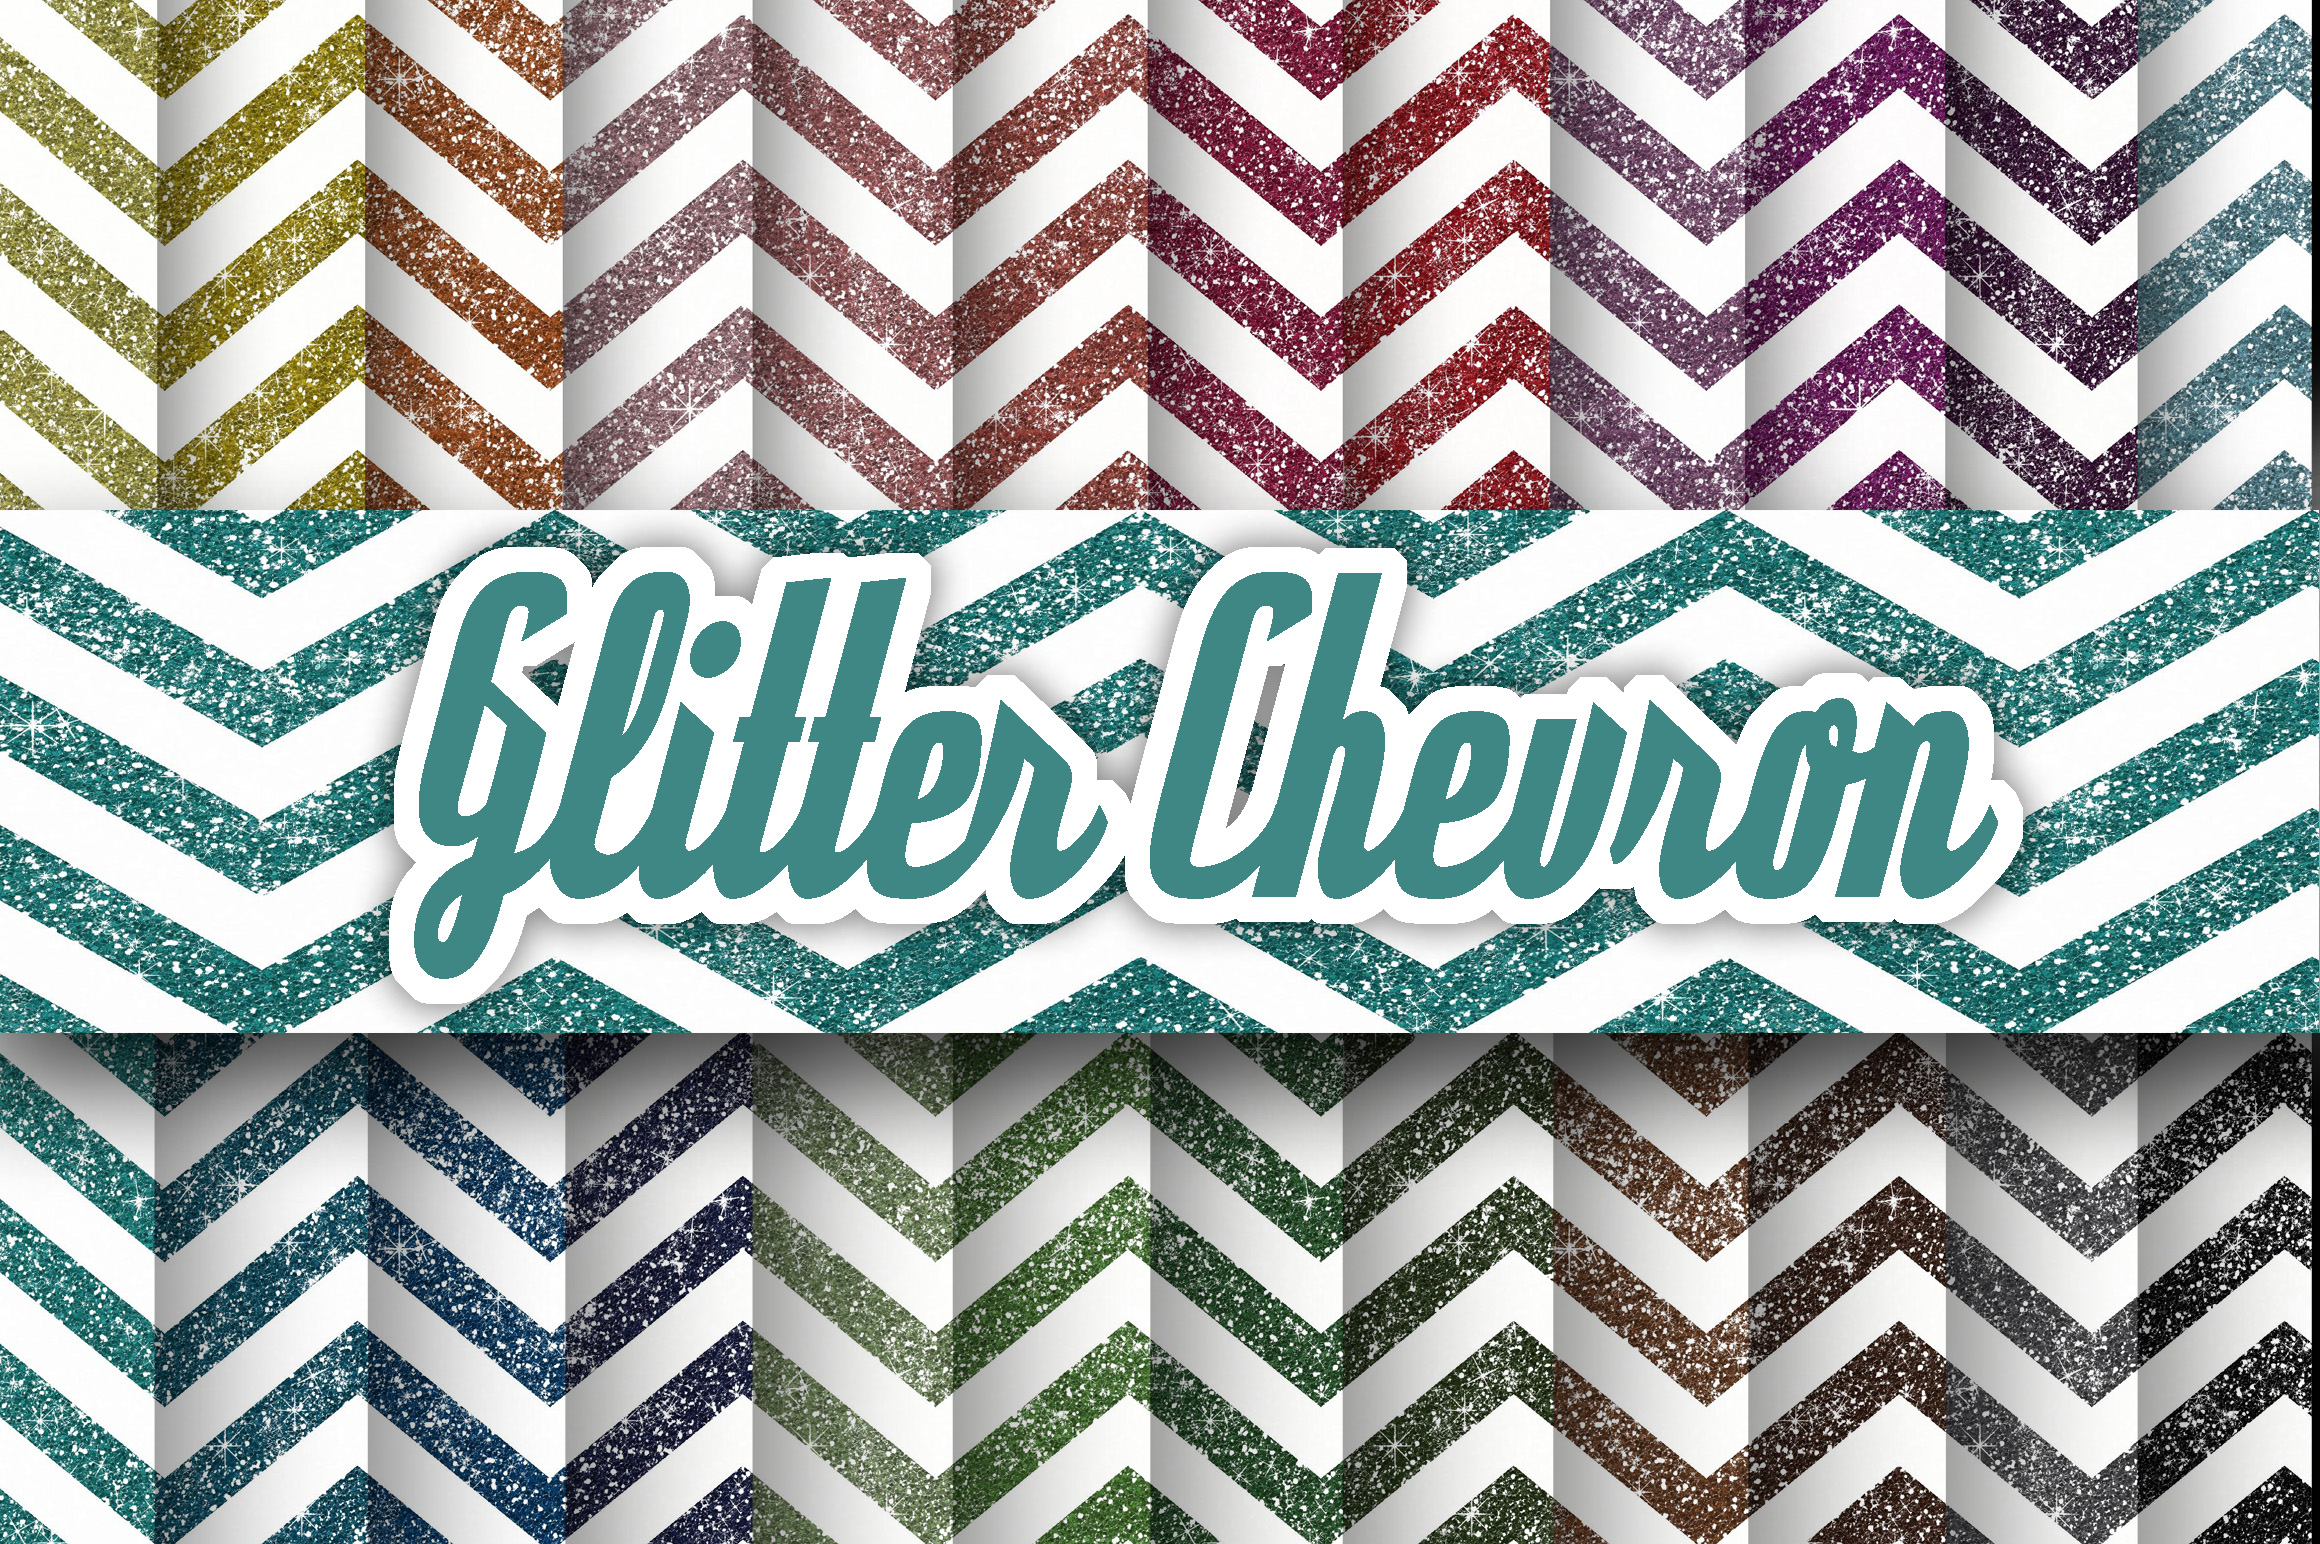 Glitter Chevron Textures Digital Paper Graphic Backgrounds By oldmarketdesigns - Image 1